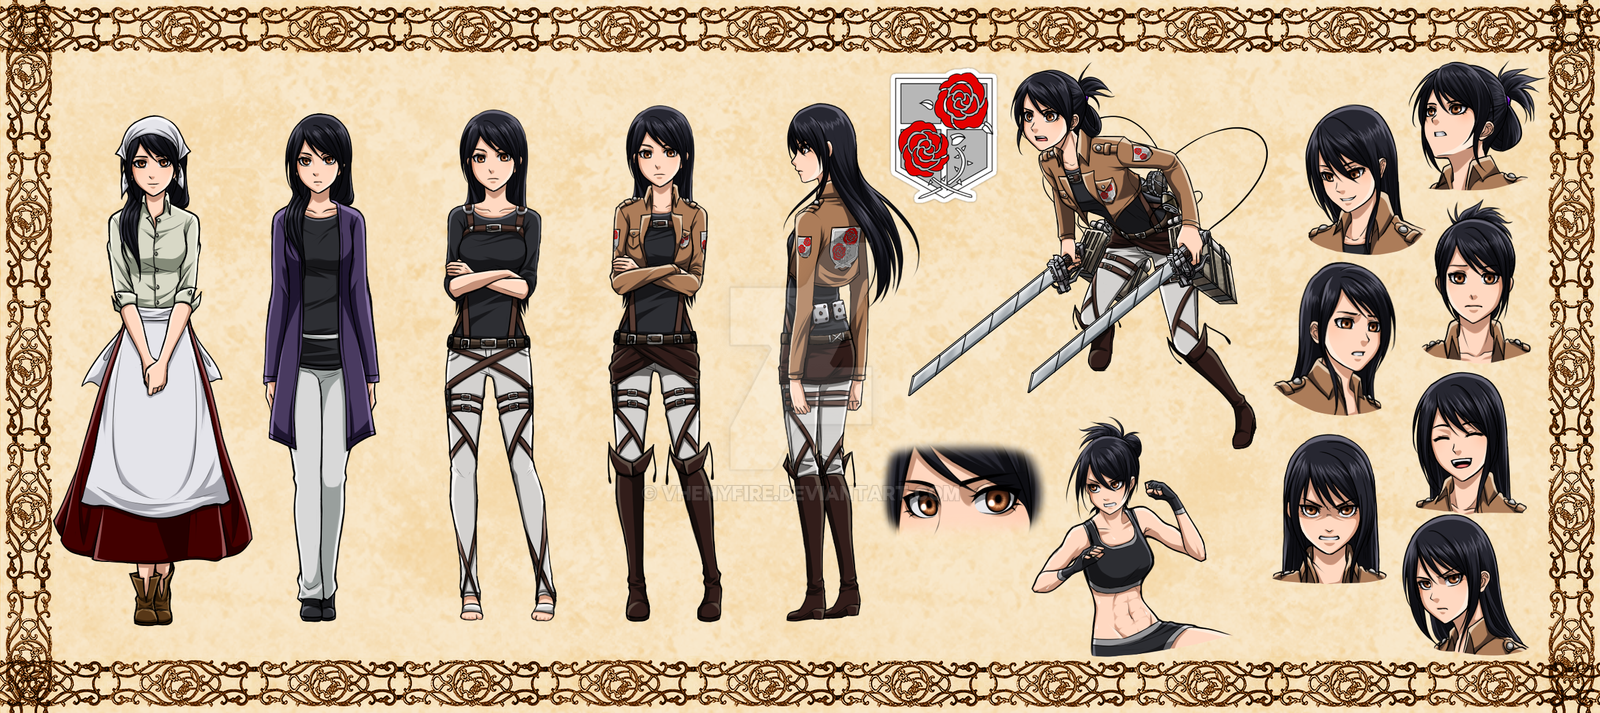 Anime Characters 153 Cm : Veena roza snk oc by vhenyfire on deviantart